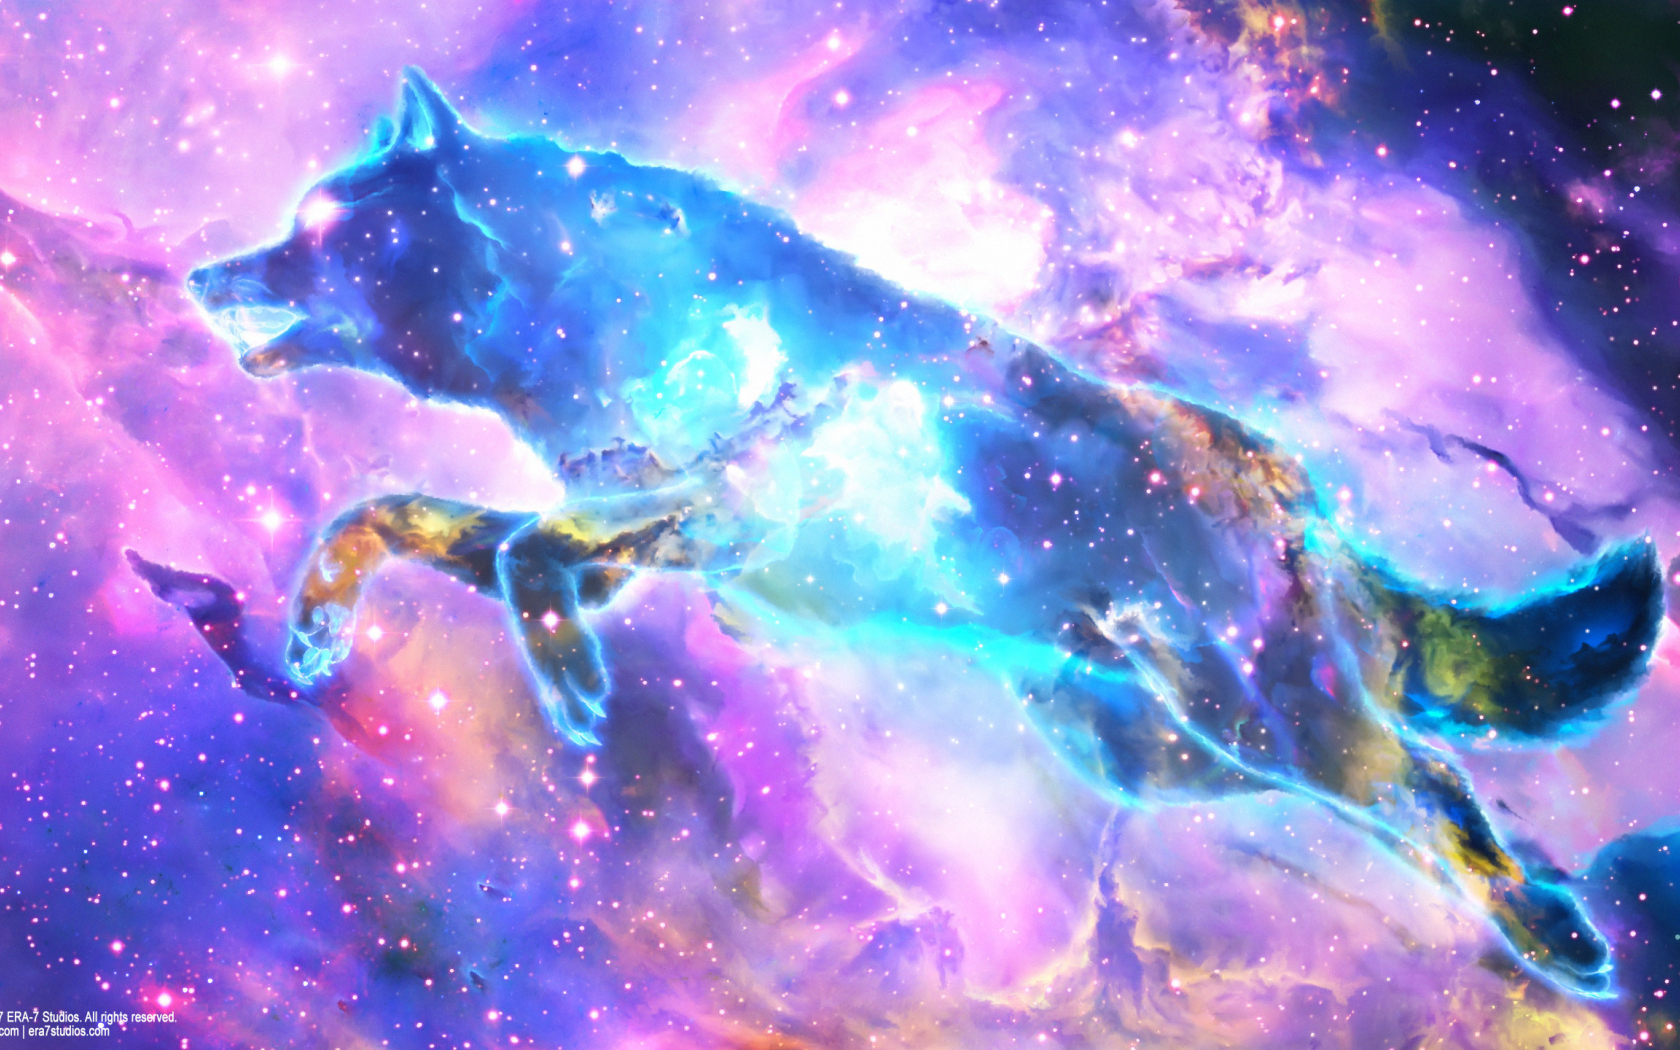 Free Download Galaxy Wolf Wallpaper 69 Images 2560x1440 For Your Desktop Mobile Tablet Explore 29 Black Wolf Galaxy Wallpapers Black Wolf Galaxy Wallpapers Galaxy Wolf Wallpaper Black Wolf Wallpaper